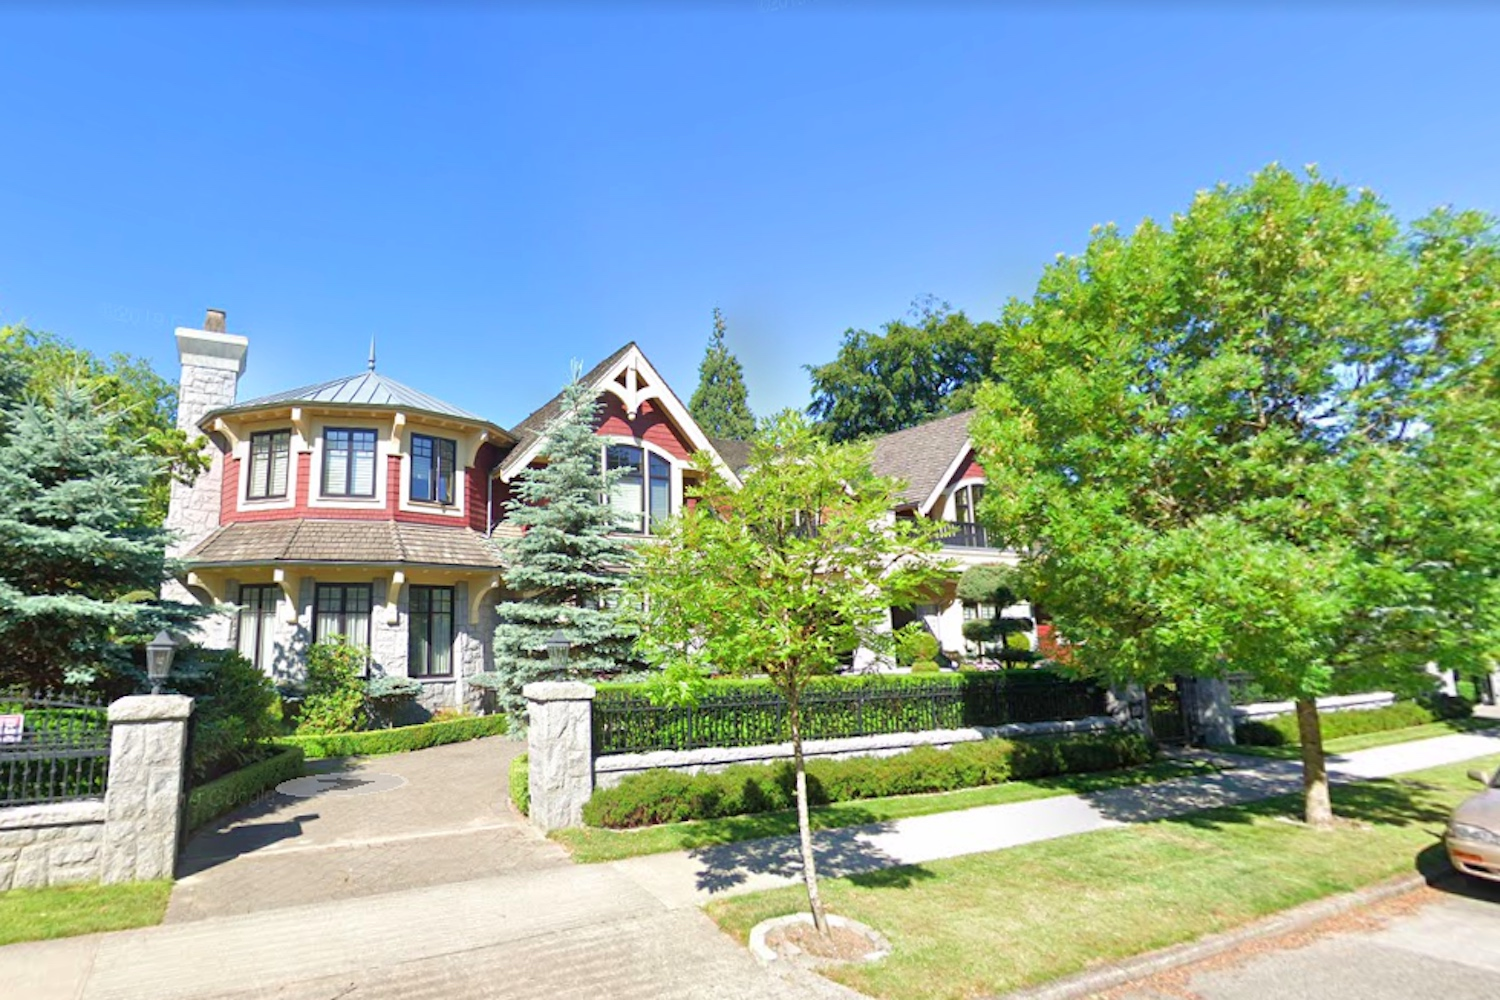 most expensive streets Vancouver